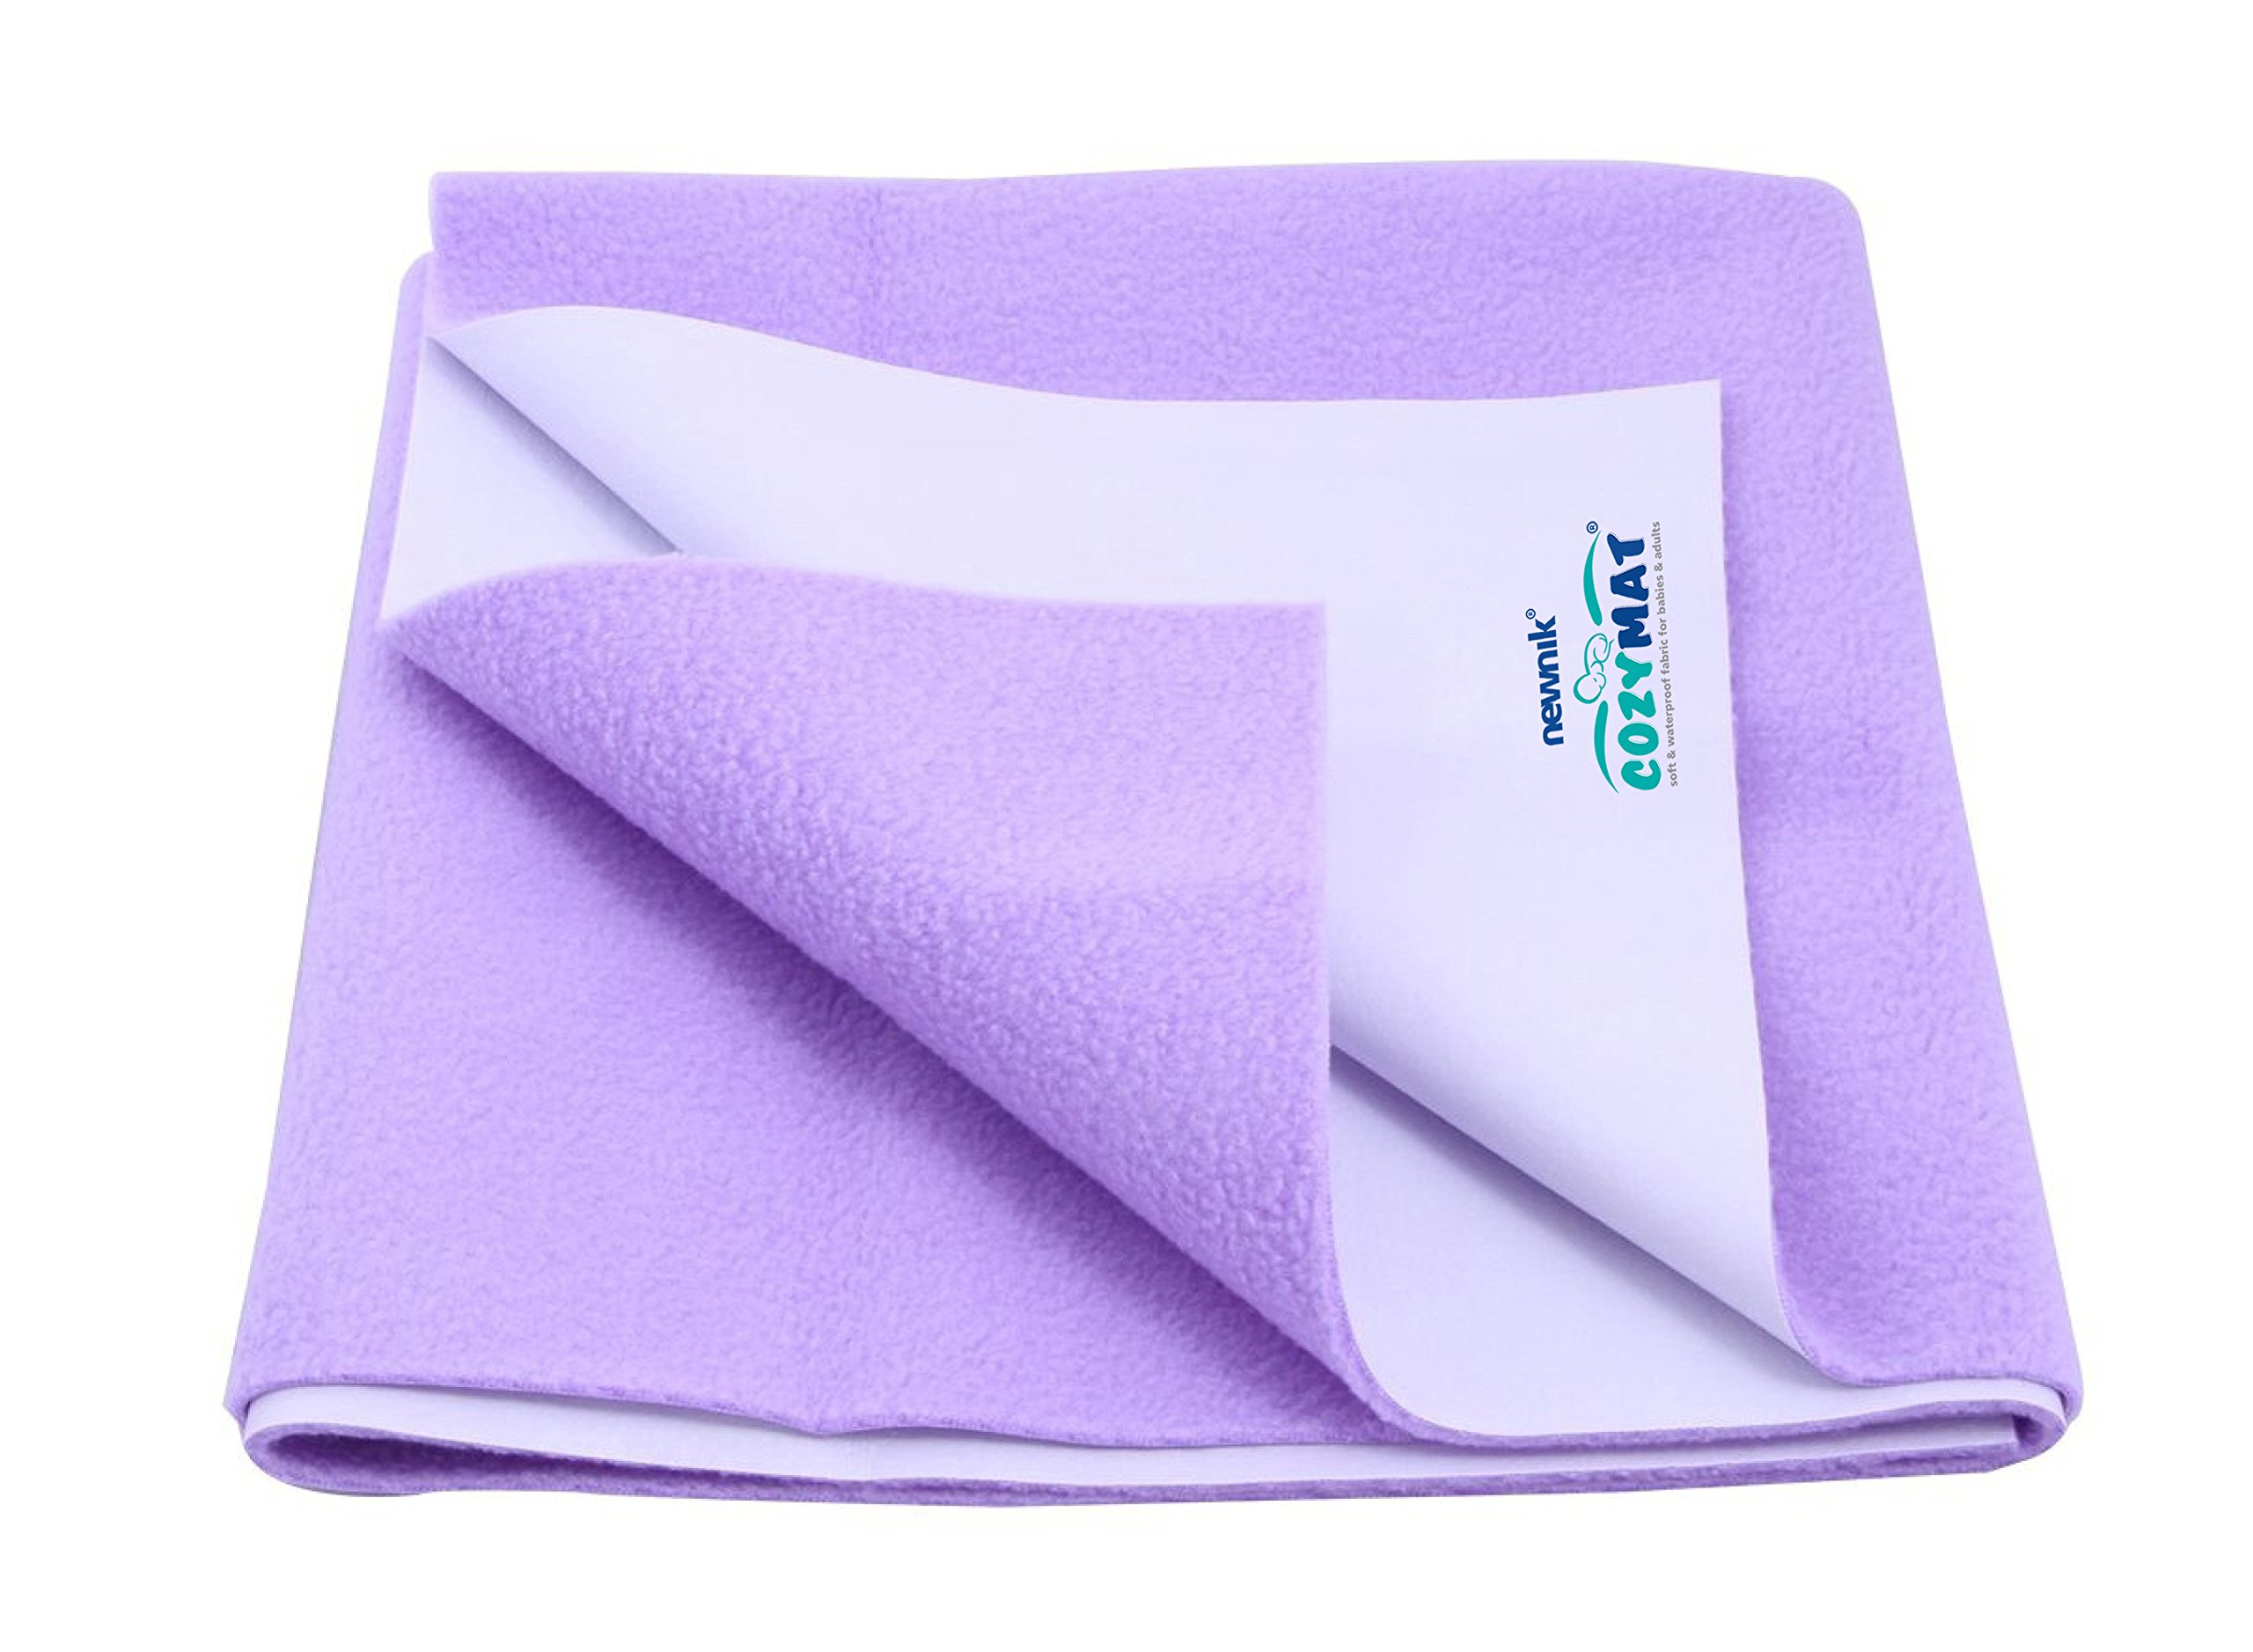 Cozymat Soft, Waterproof, Reusable Mat/Underpad/Absorbent Sheets/Mattress Protector (Size: 140cm x 100cm) Purple, L by cozymat